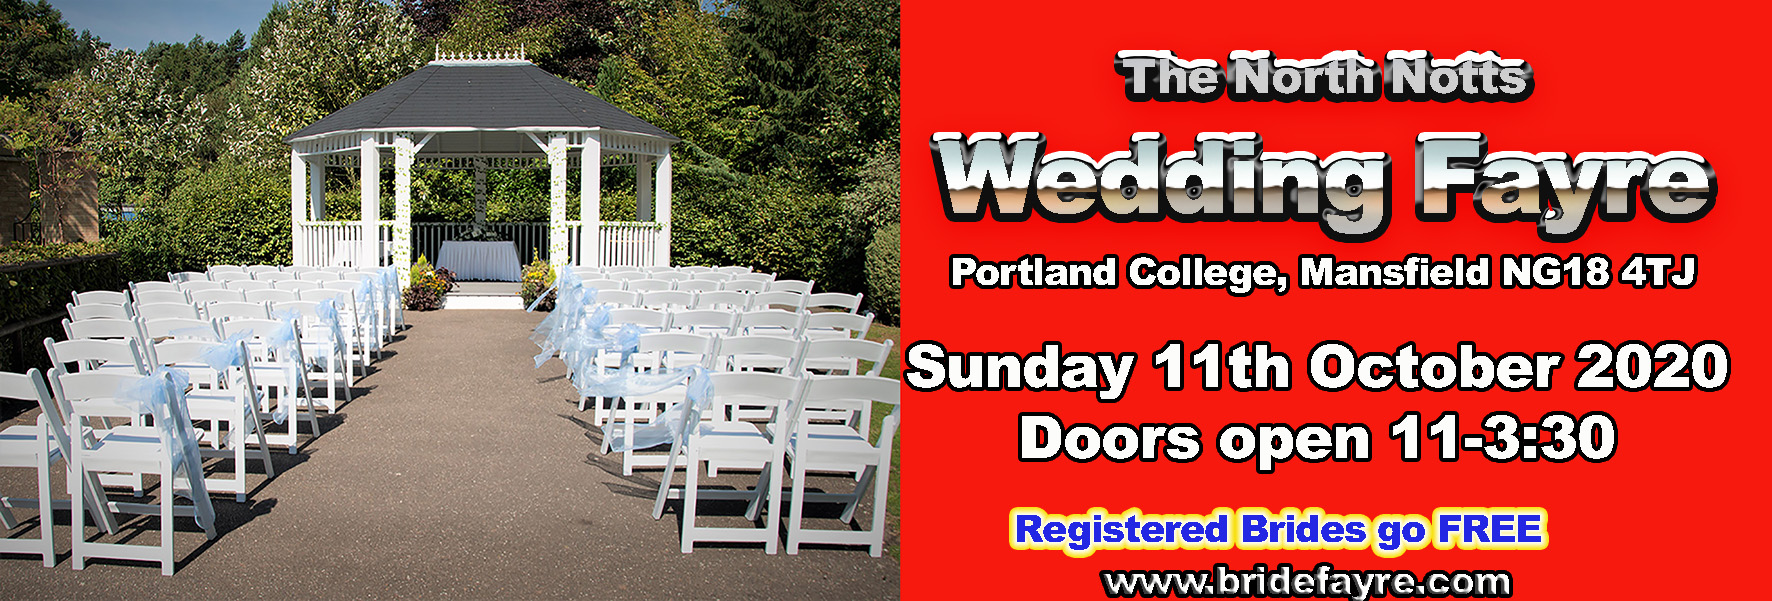 portland college wedding fayre 2x6 small banner